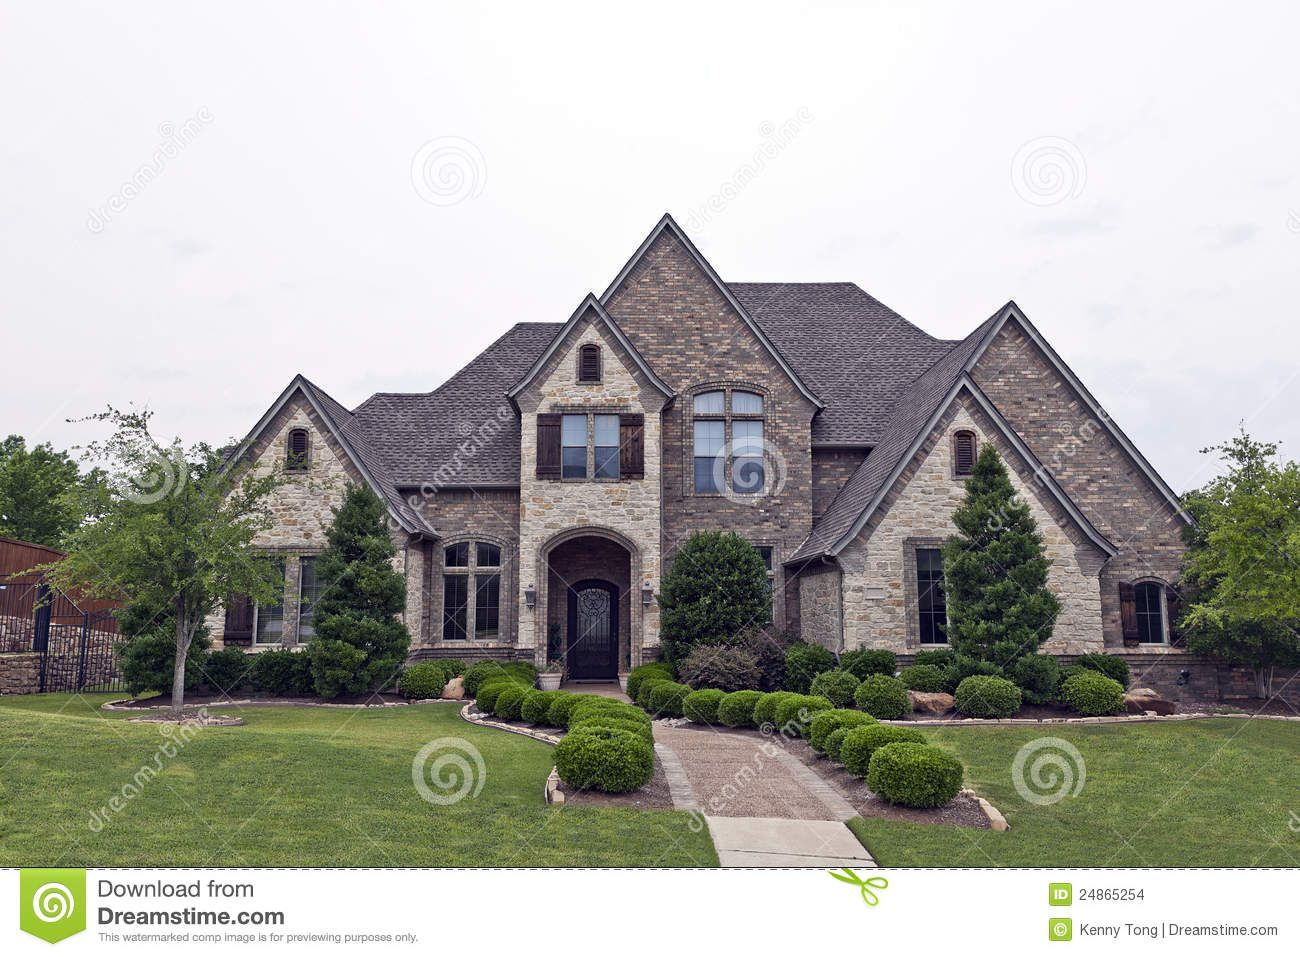 Rock and stone homes beautiful two story luxury brick for Brick house exterior design